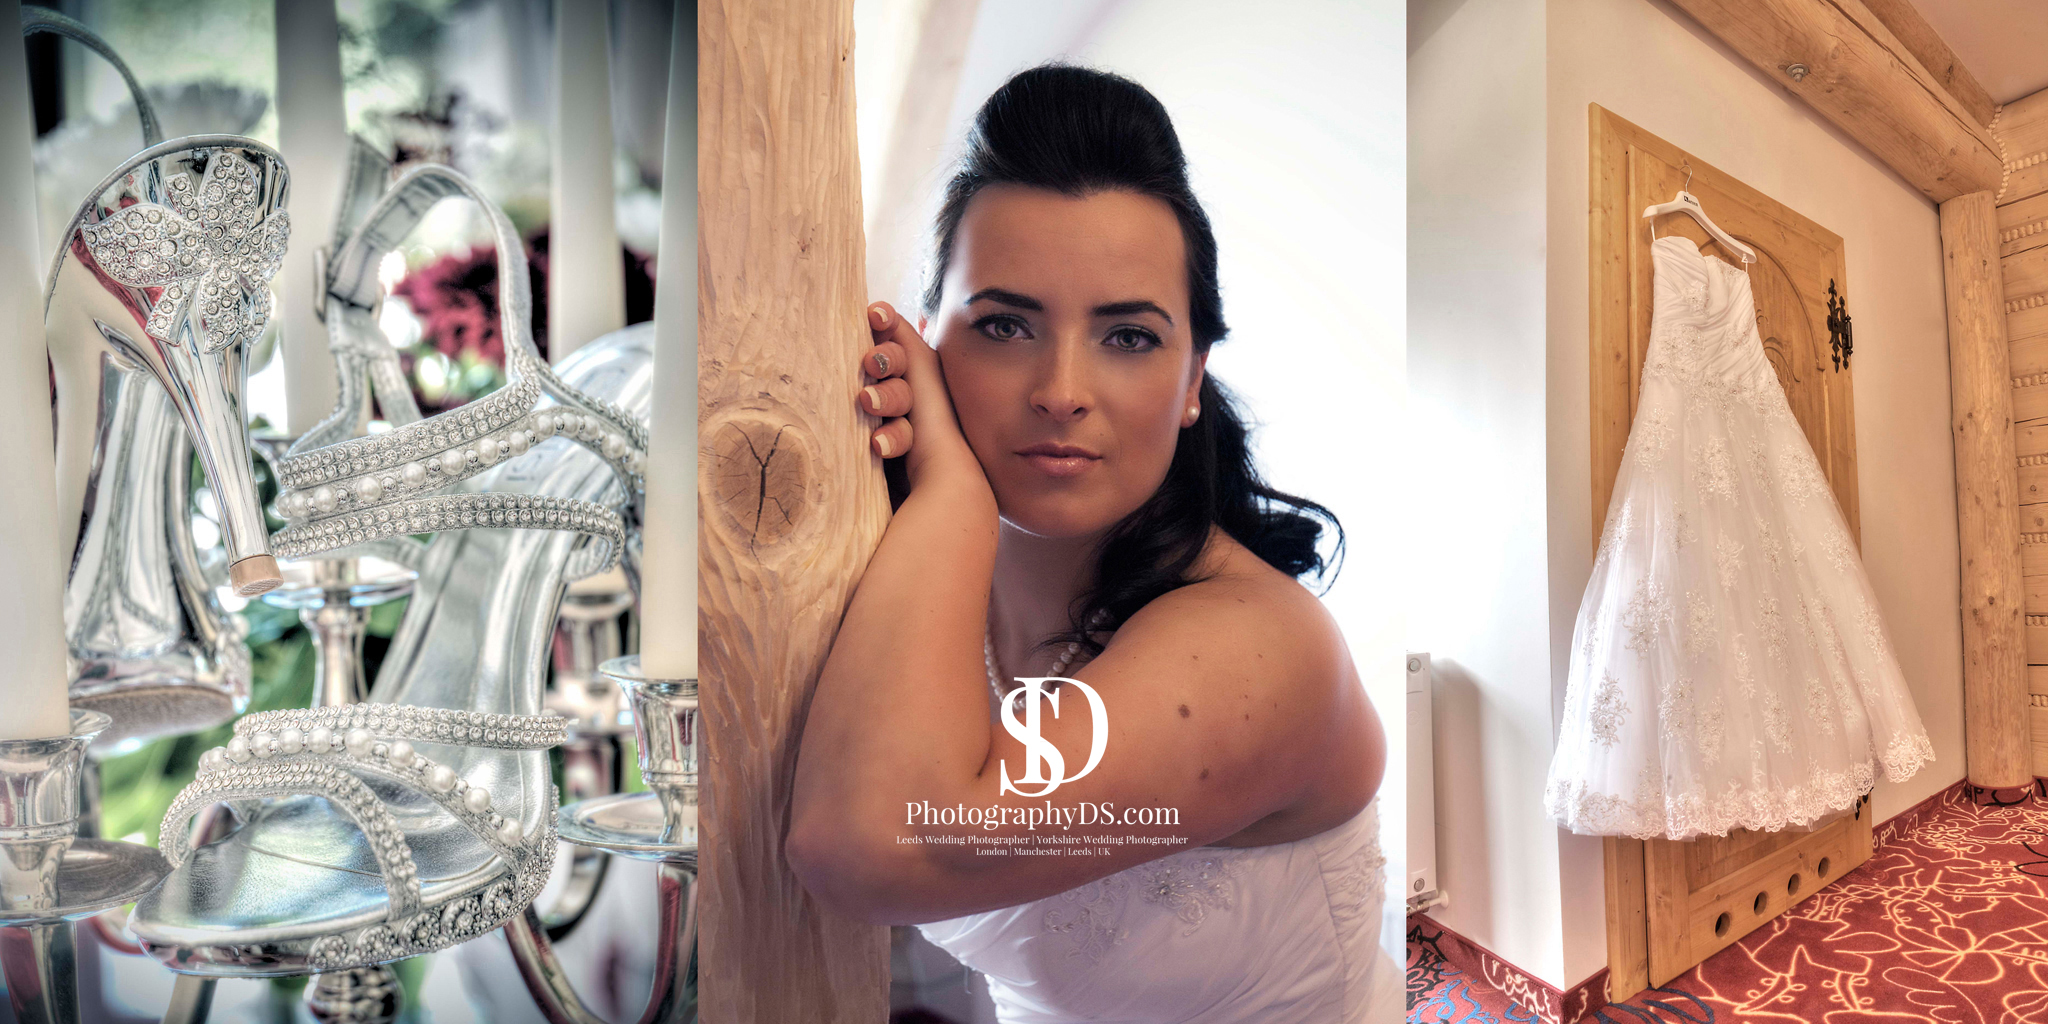 PhotographyDS Cover Watermarked.jpg